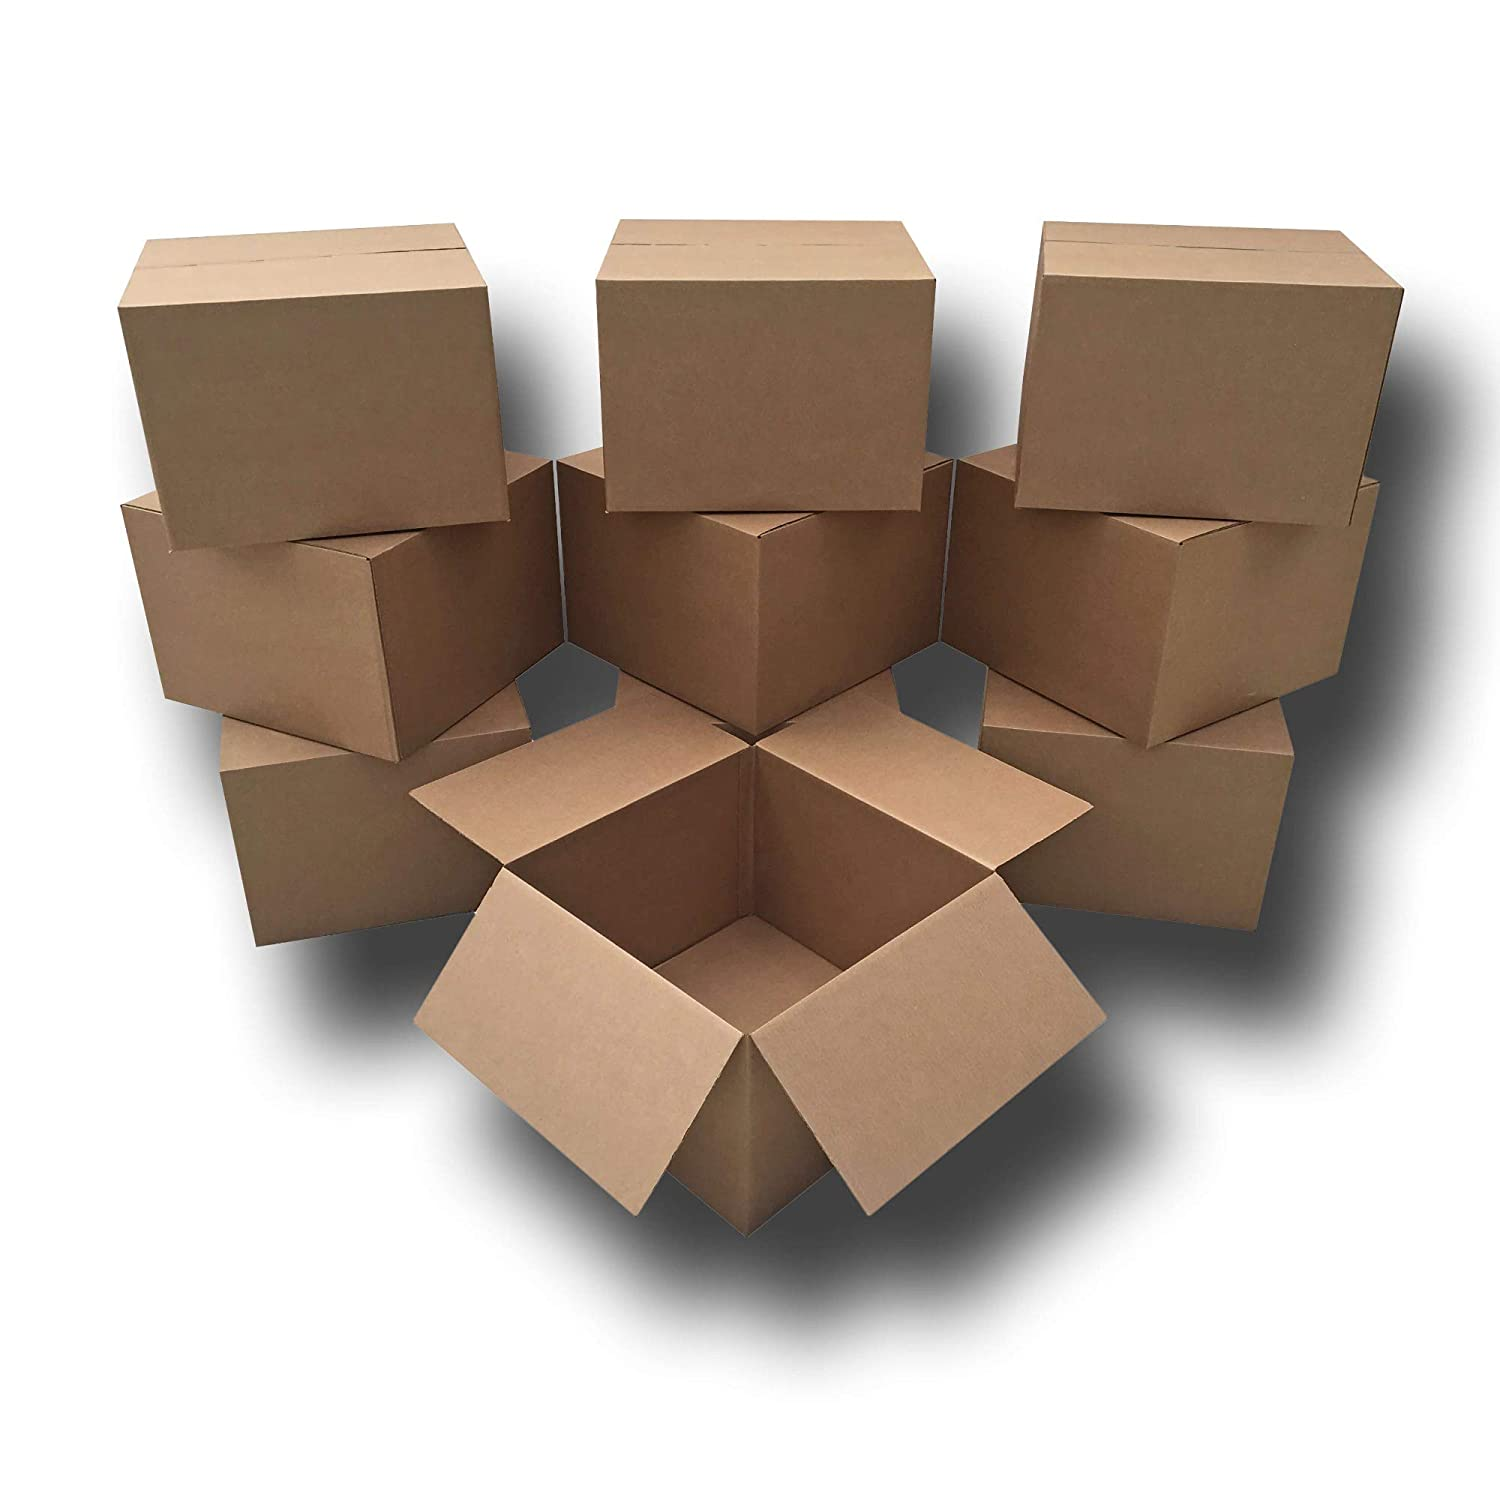 """10 Extra Large Moving Boxes 23x23x16"""" Standard Corrugated Moving Box 71SkMRVcT2L"""